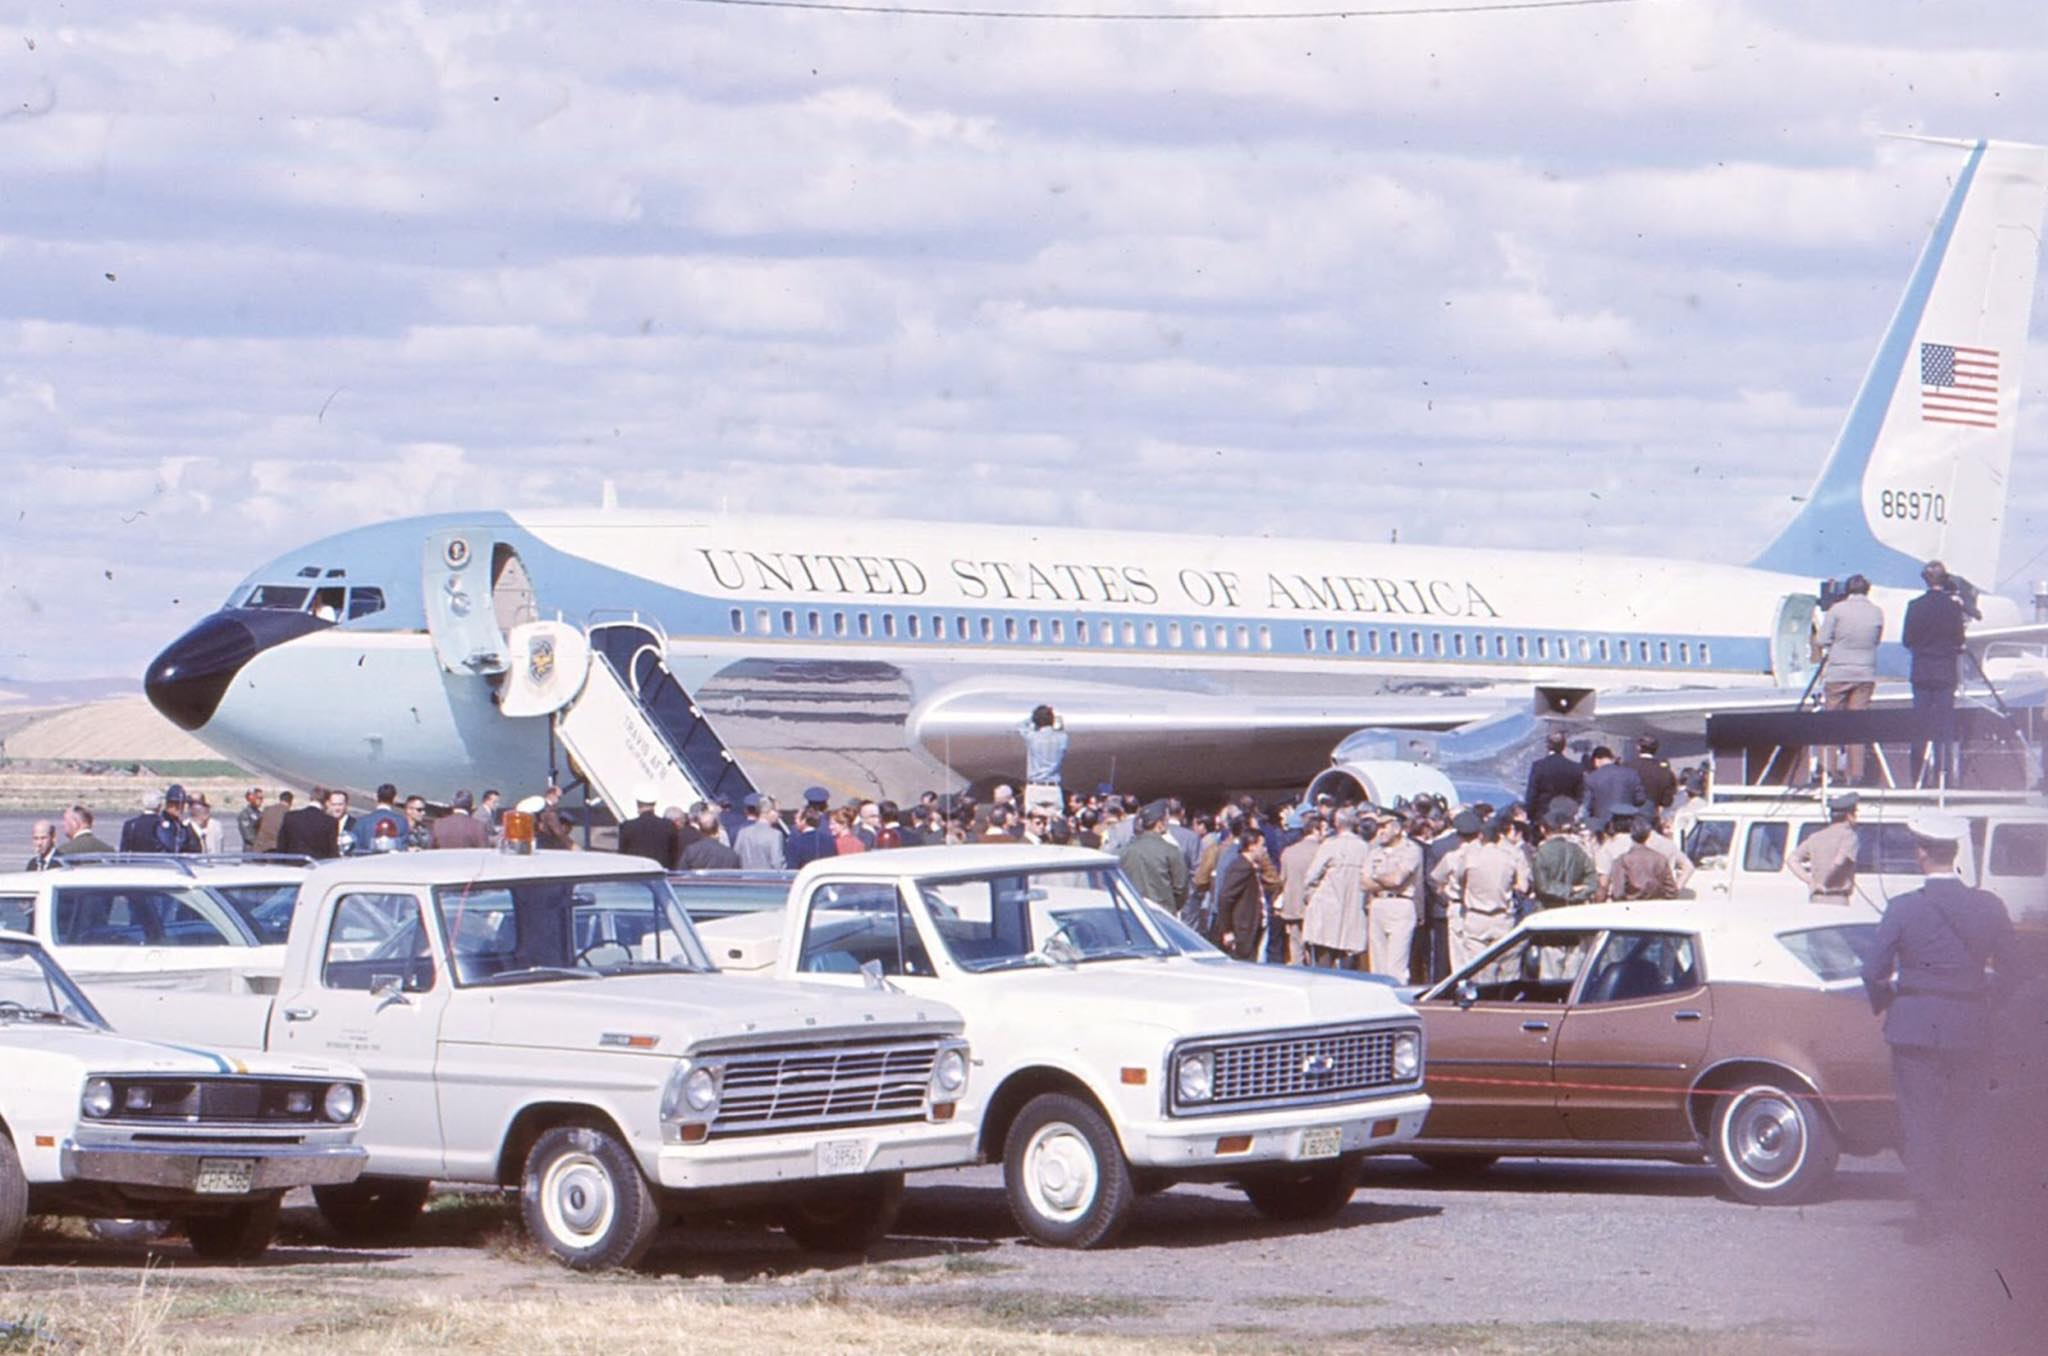 Privately Owned Vehicles parked on the tarmac at an airport in Walla Walla, Washington during the arrival of President Richard Nixon, 1971